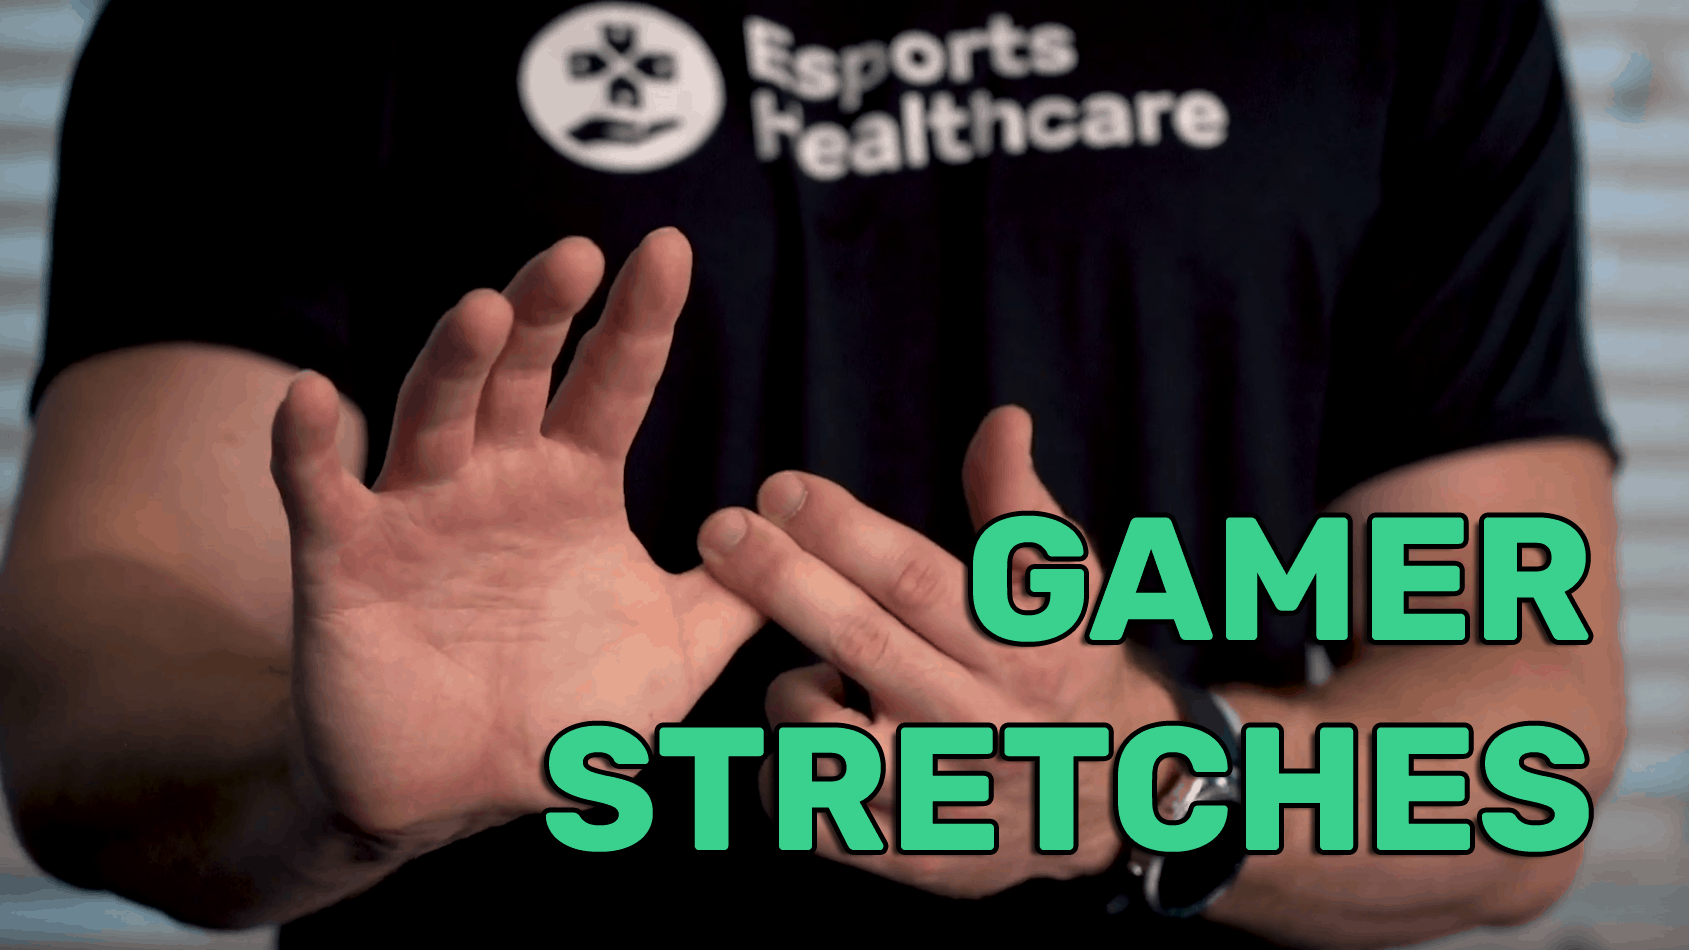 Gamer stretches